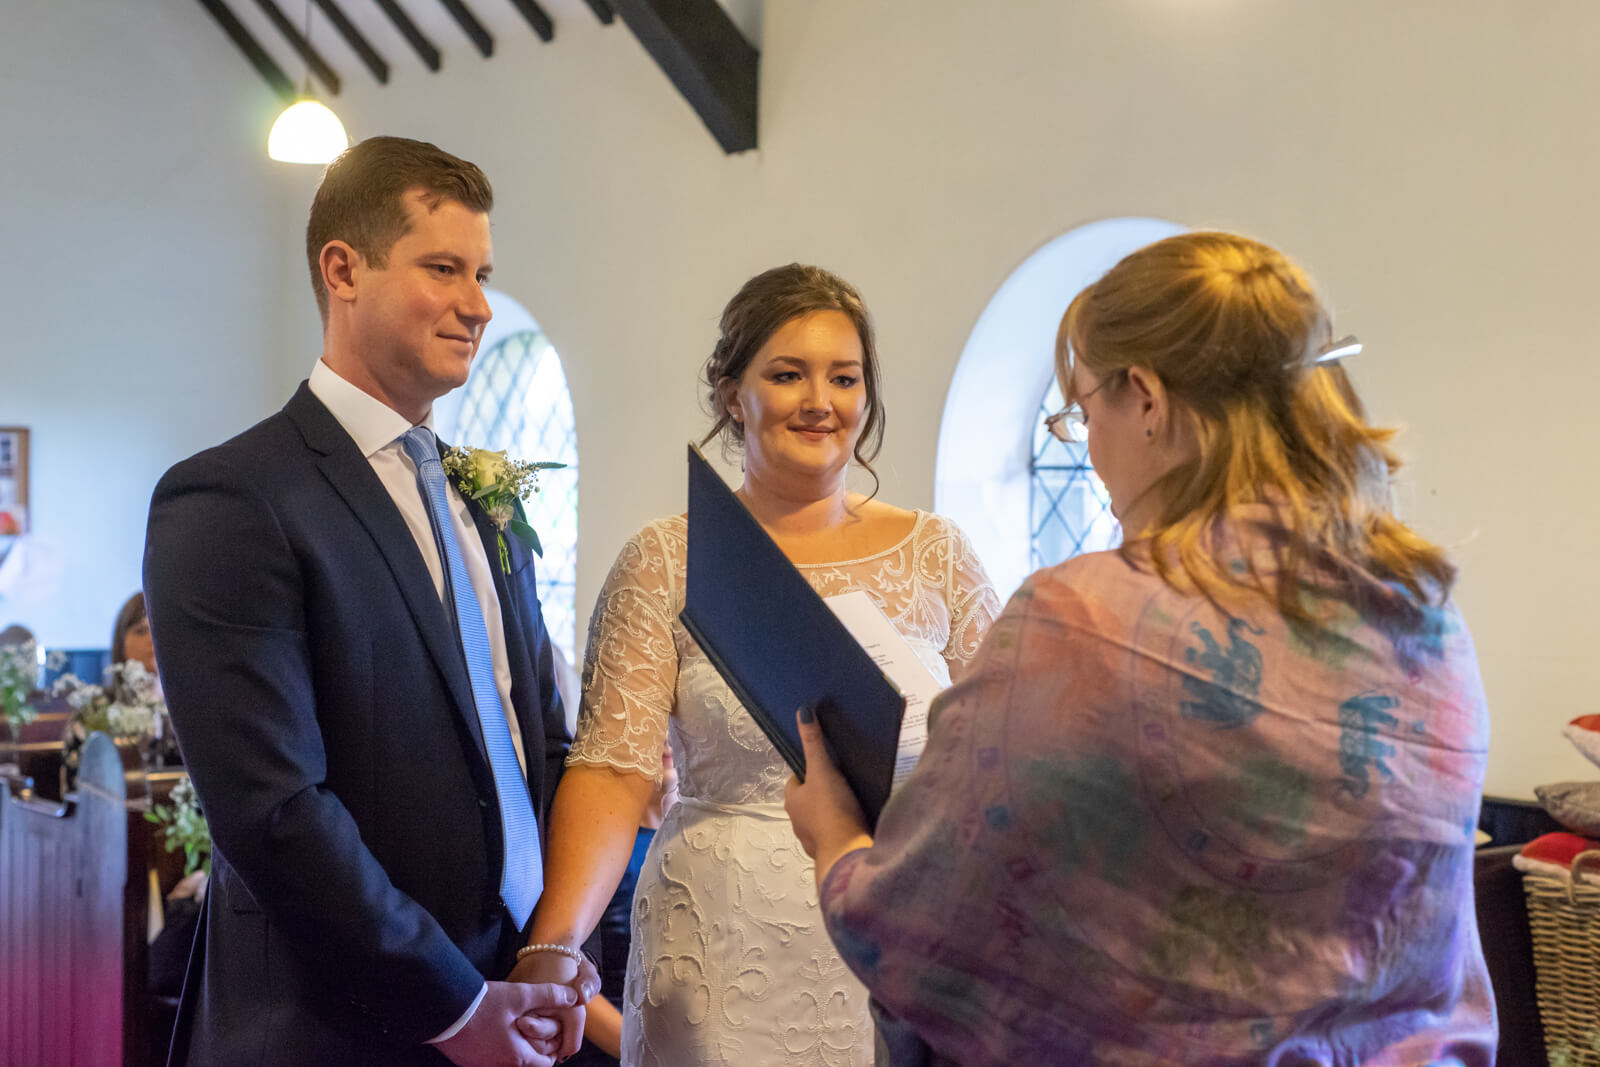 Bride and groom hold hands at the alter while celebrant conducts the service